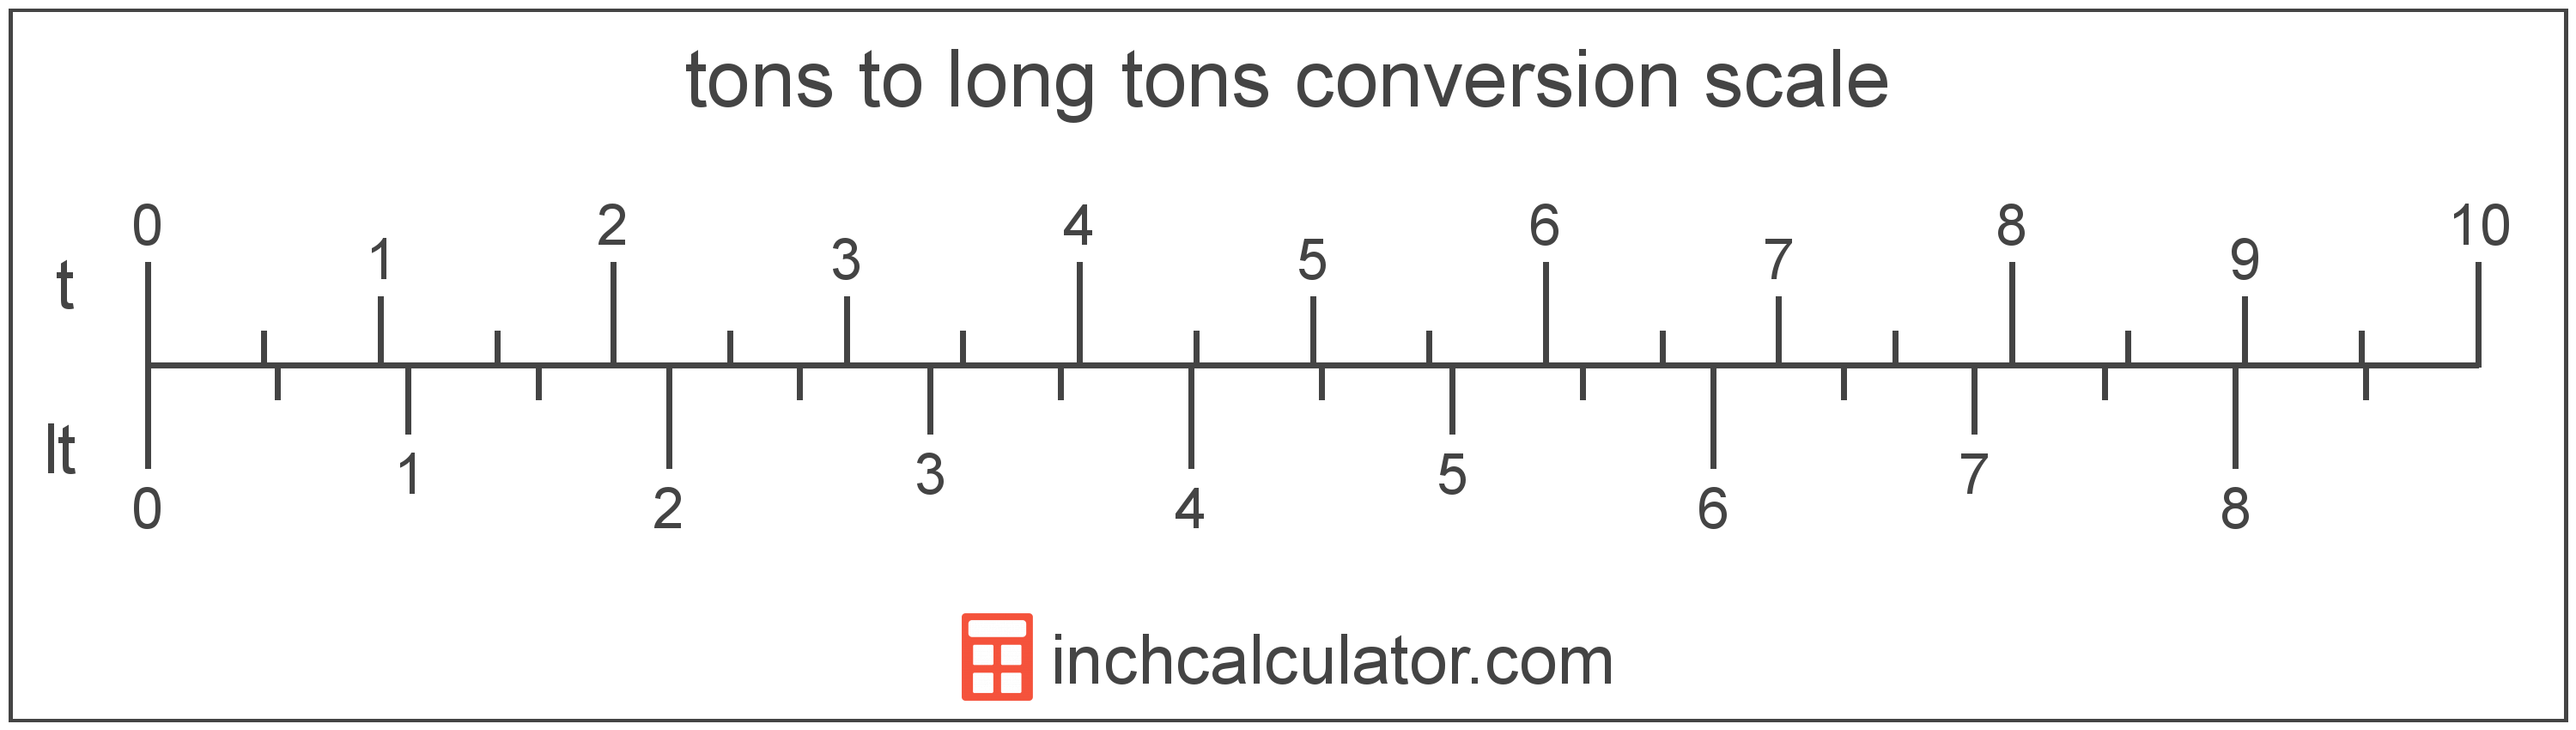 conversion scale showing tons and equivalent long tons weight values